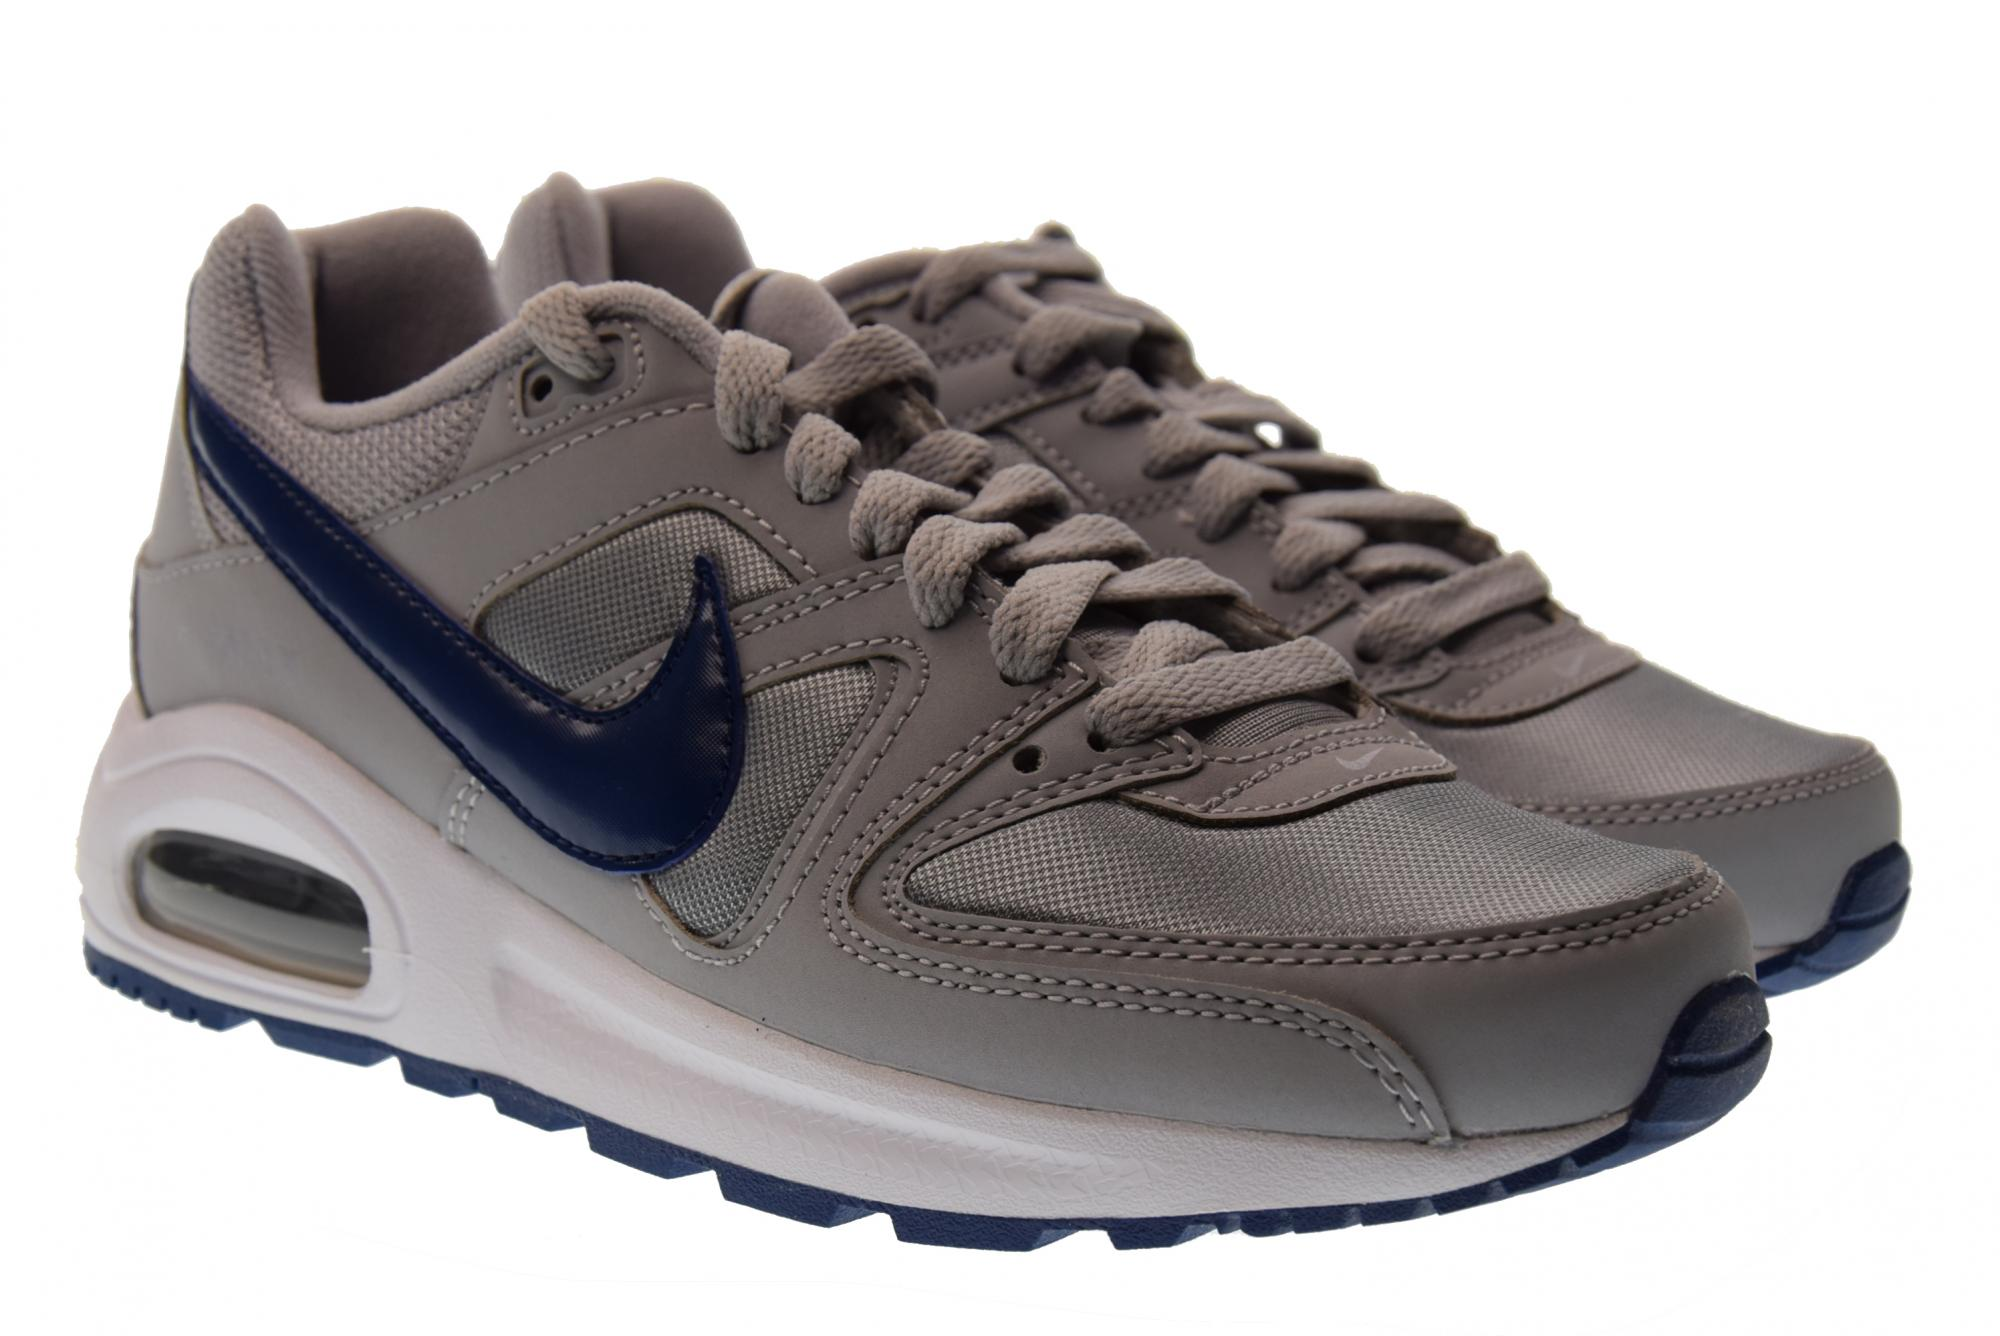 hot sale online b878e 1584b Nike scarpe unisex sneakers basse 844346 041 AIR MAX COMMAND FLEX GS P18